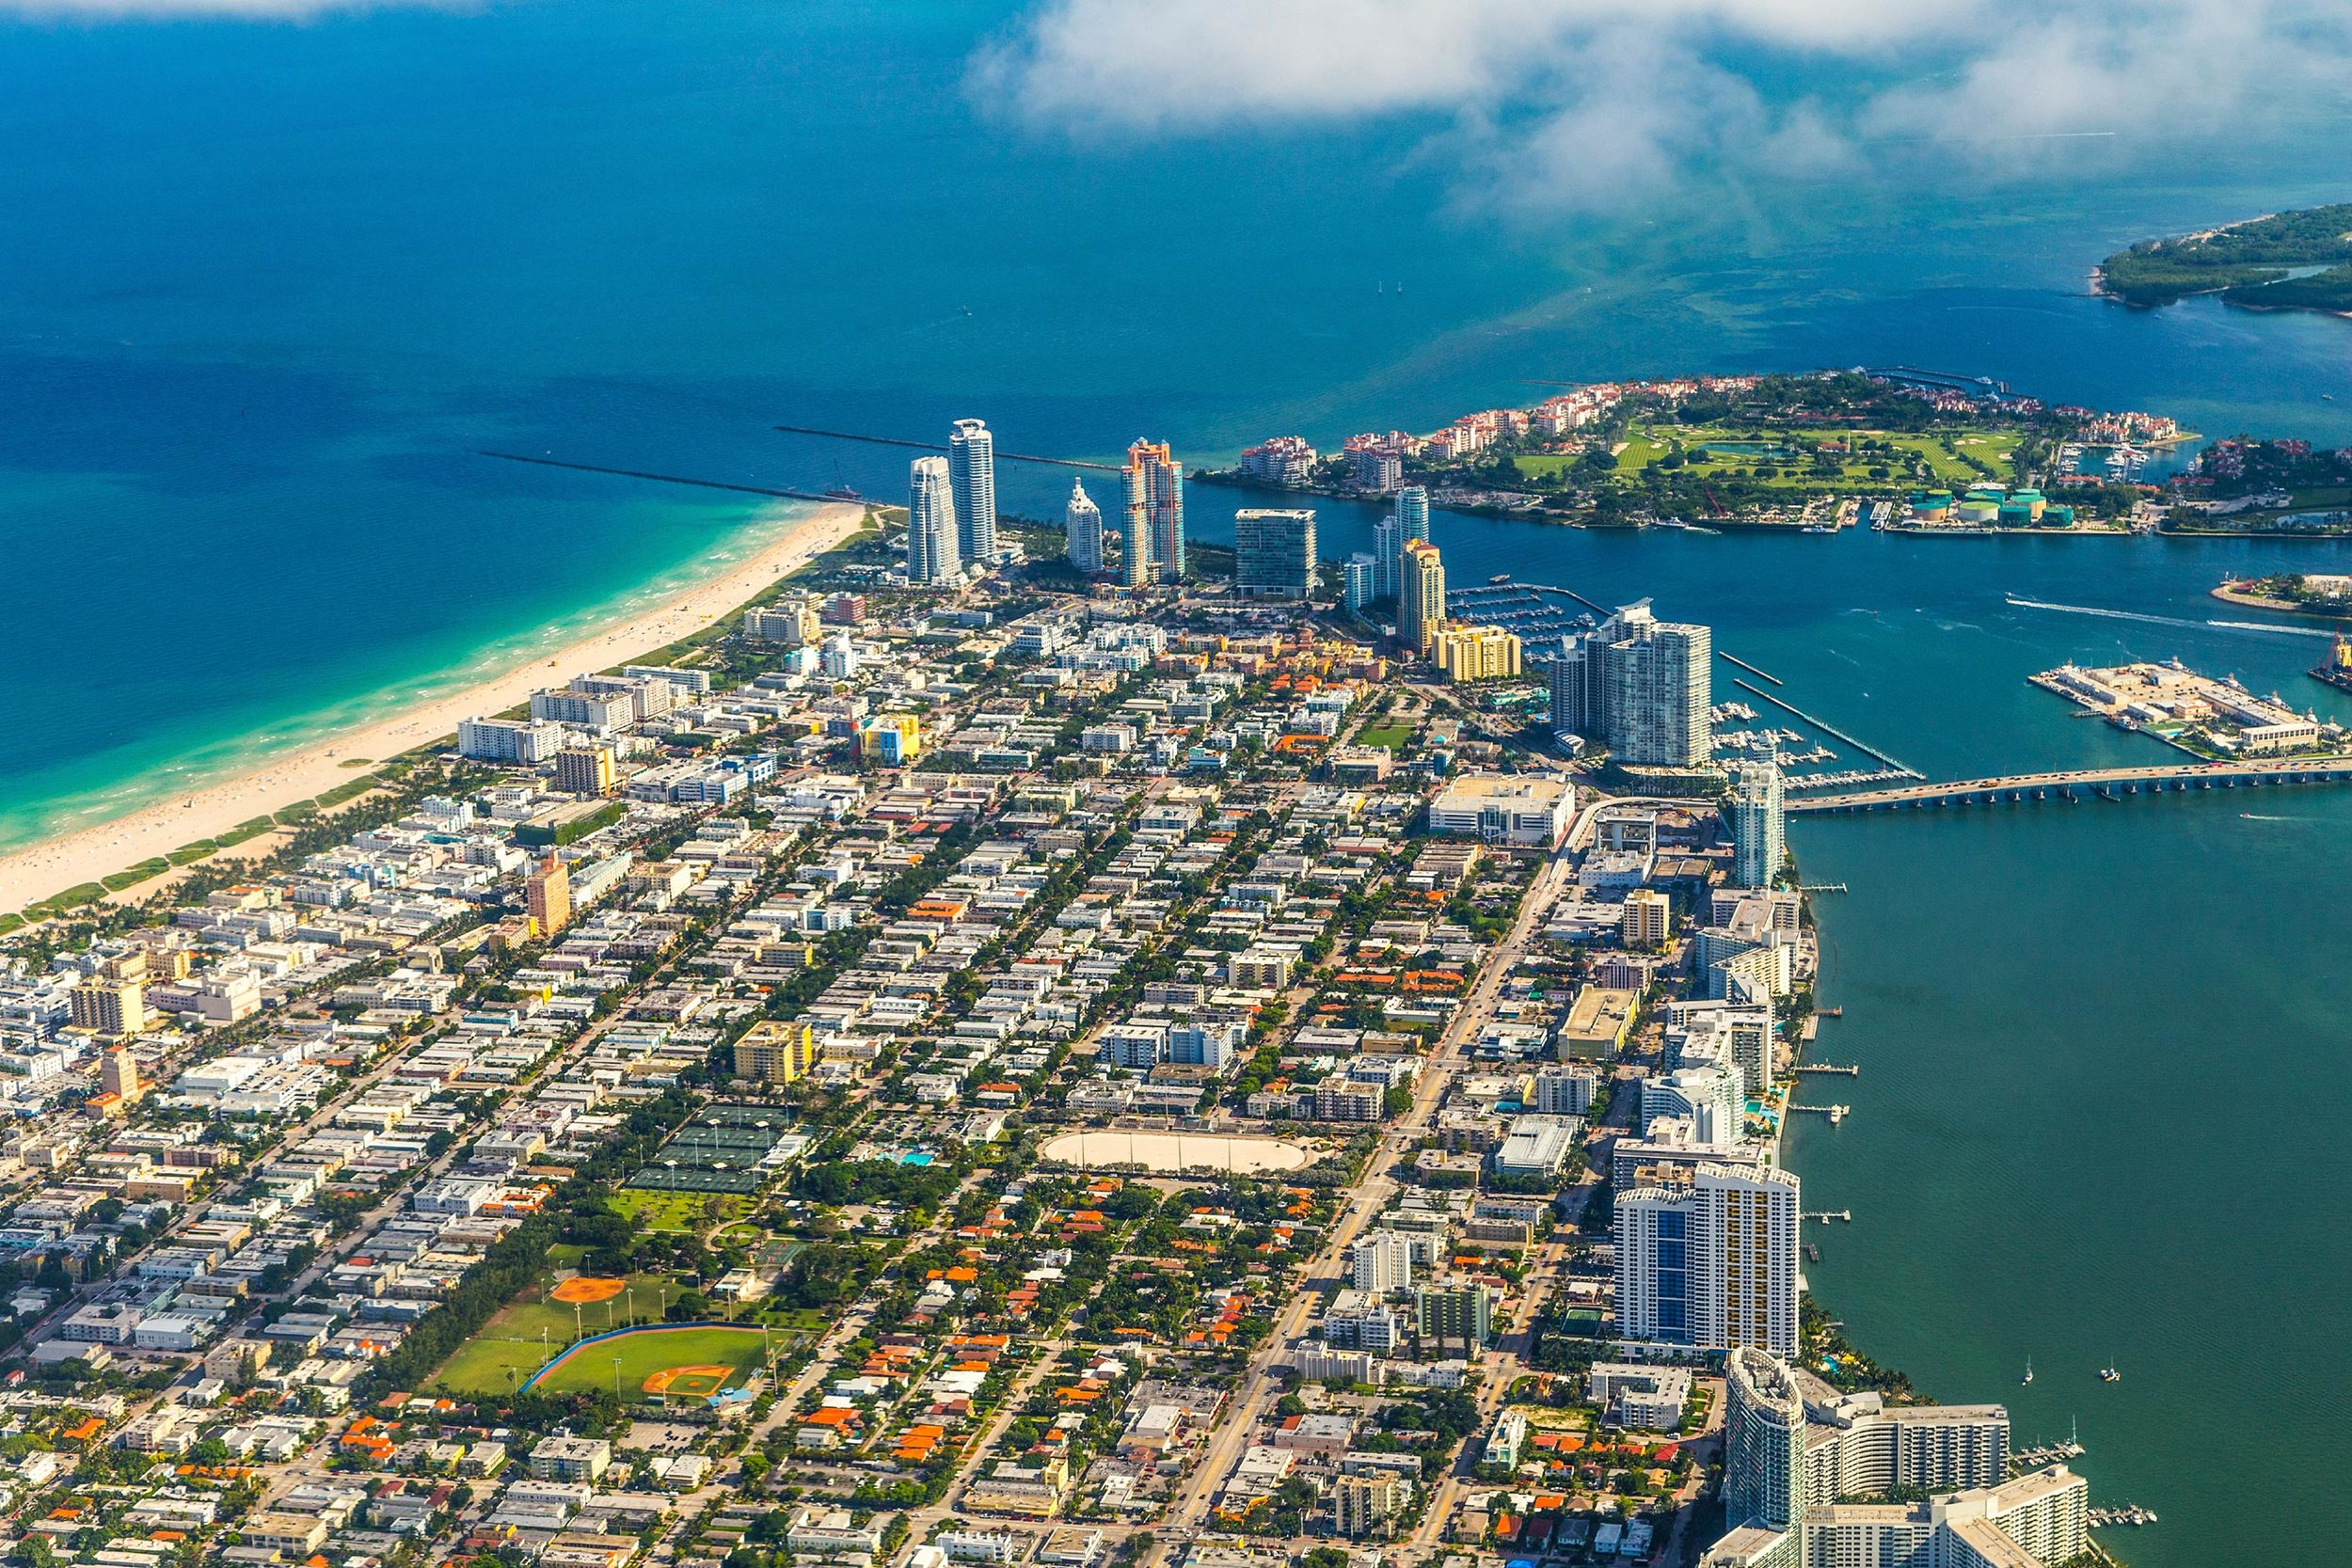 "<p>NEIGHBORHOOD<strong>The Orchid House's location puts guests at the epicenter of the storied South Beach scene, less than one block from the beach.</strong><a href=""/neighborhood"">MORE</a></p>"